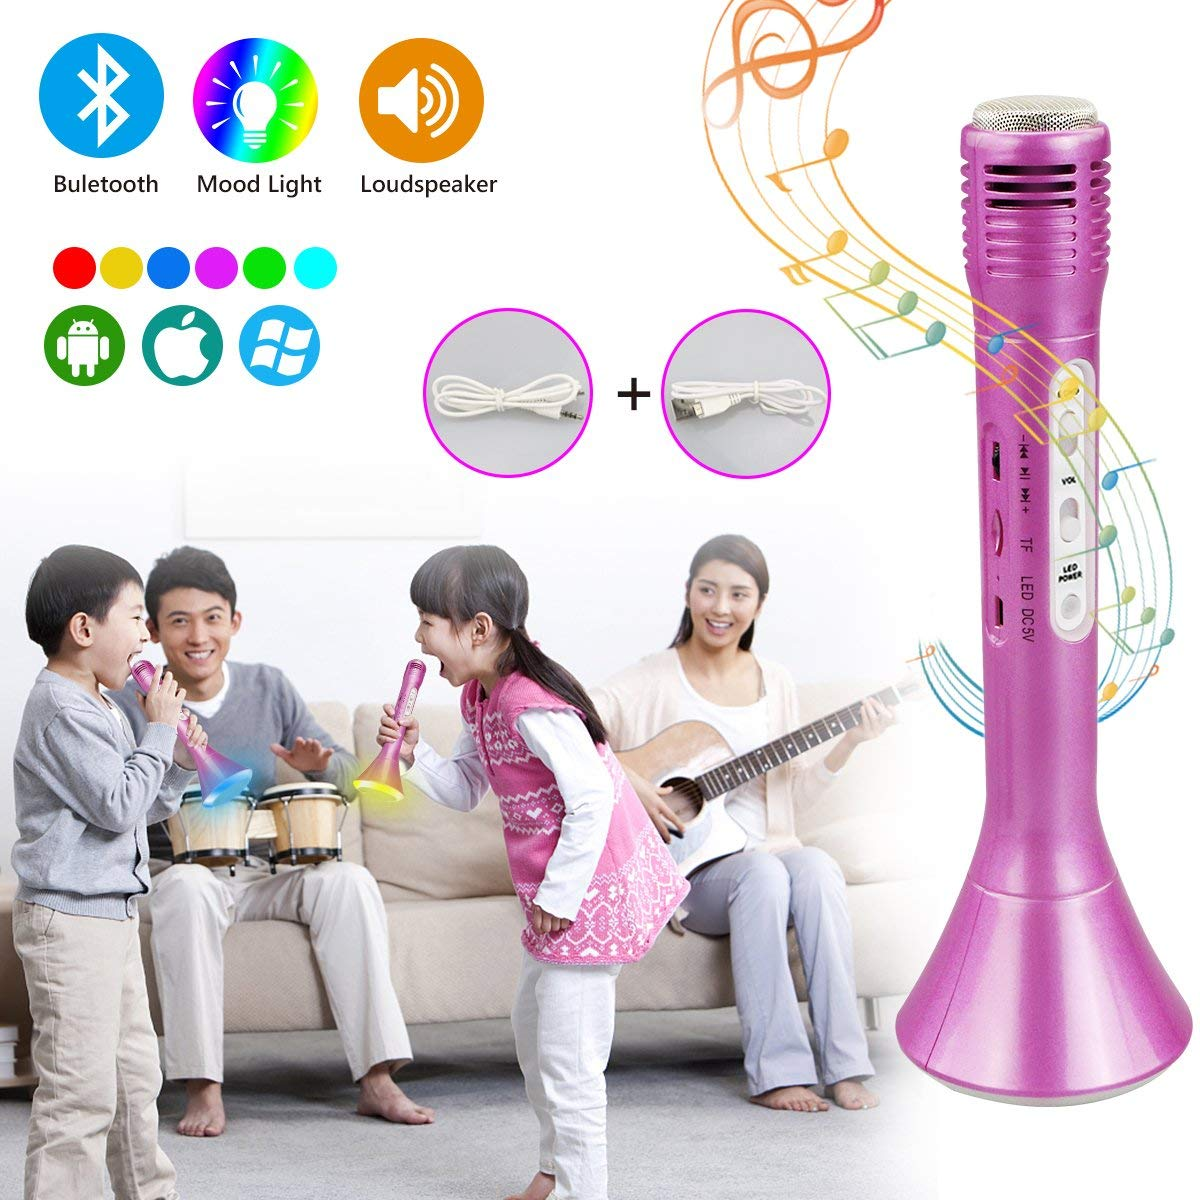 Fixget Wireless Karaoke Microphone, Bluetooth Portable Microphone for kids Karaoke Mic for Home Party Music with Speaker Music Singing Equipment for iPhone/Android/IOS/Smart phone(Pink)